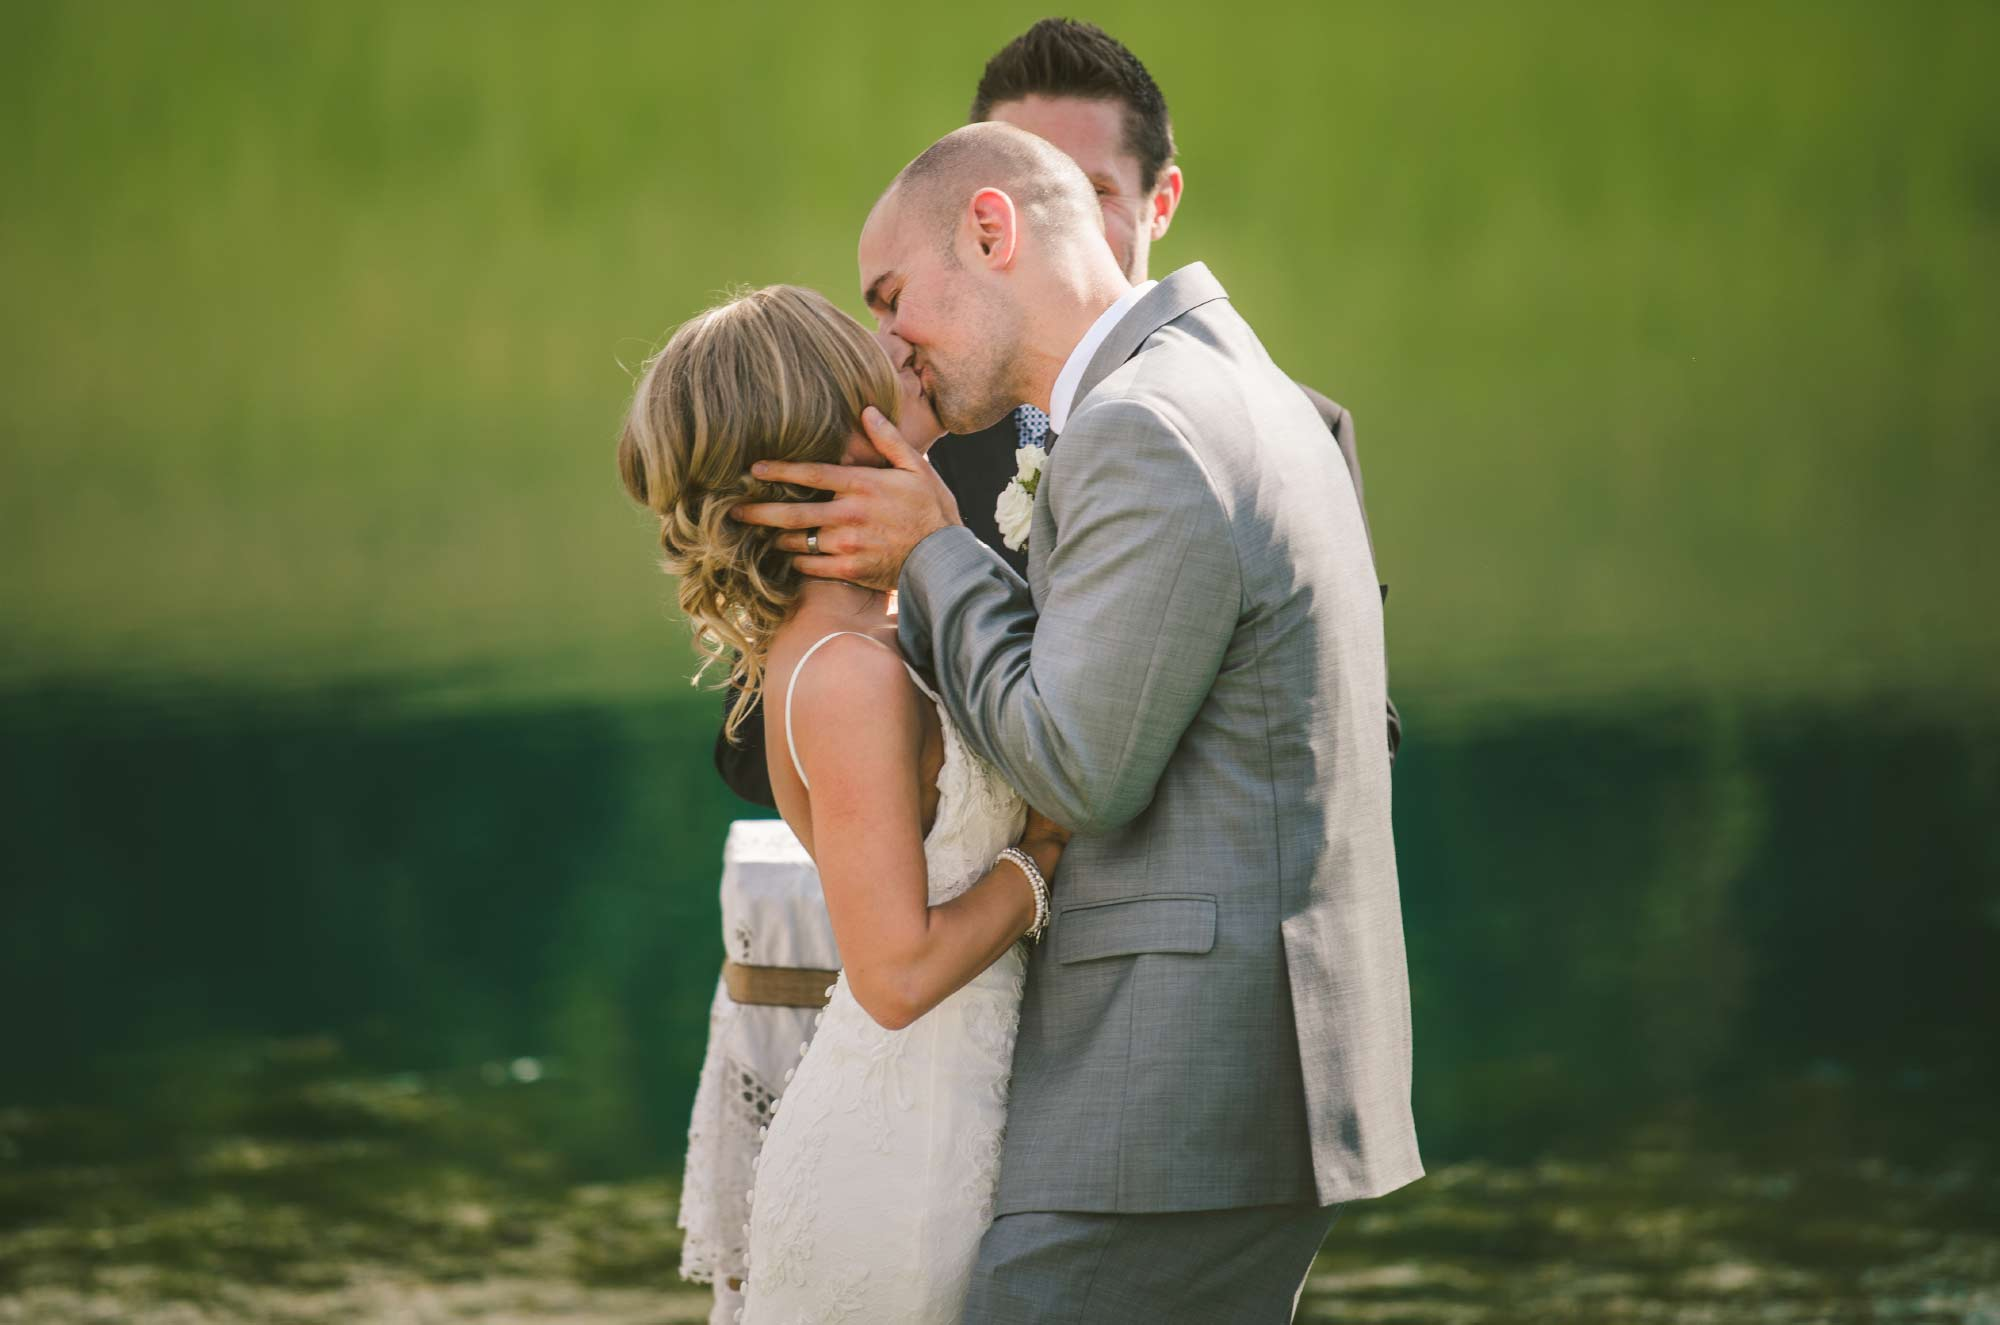 The kiss bride and groom wedding ceremony